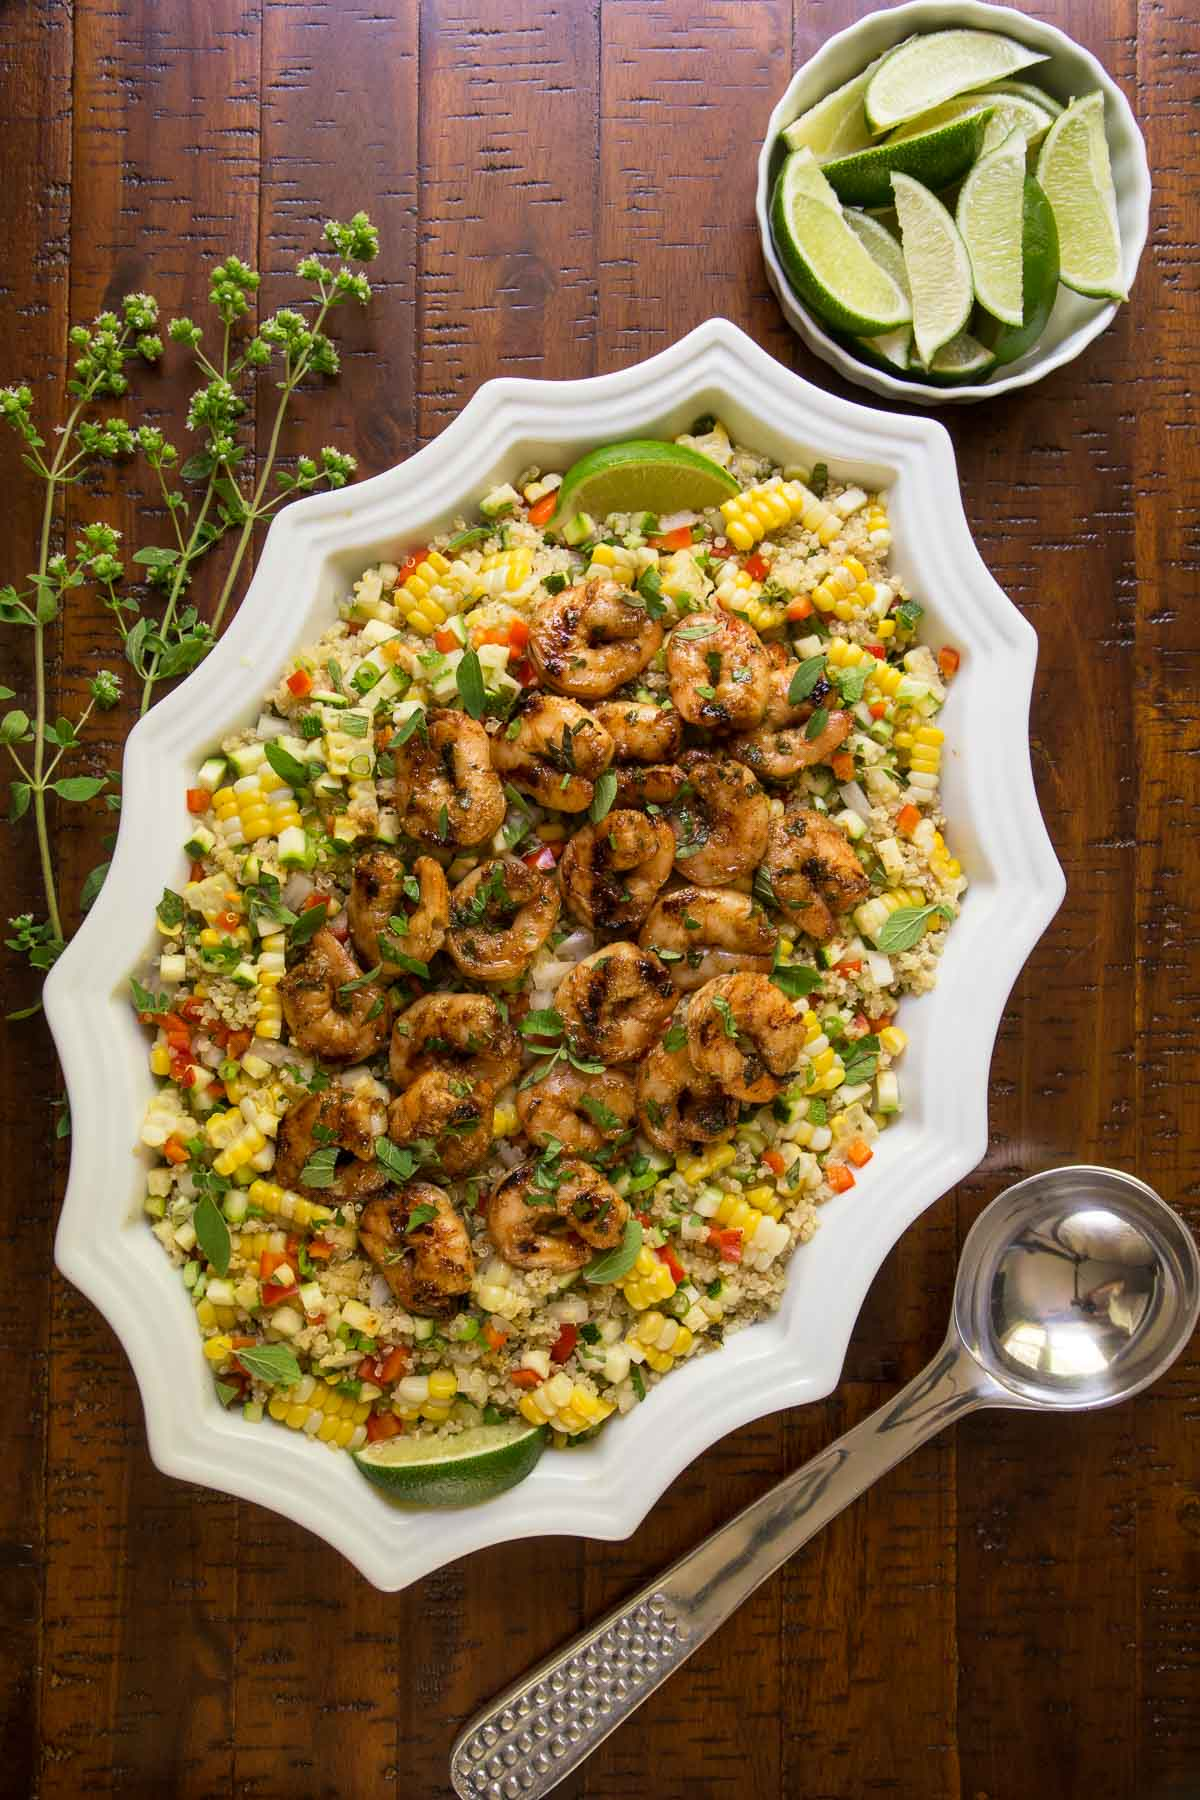 ChoppedMexican Quinoa Salad with Chili Lime Shrimp